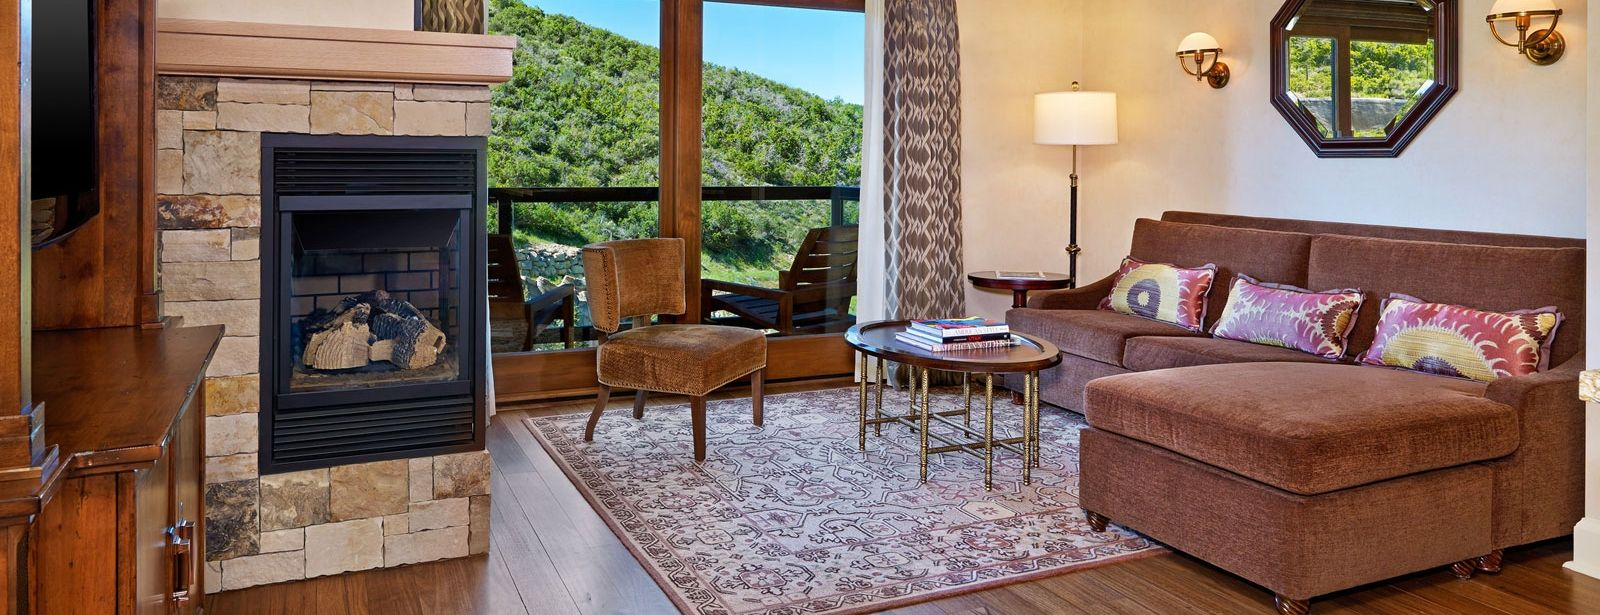 The St. Regis Deer Valley - Luxury Suite